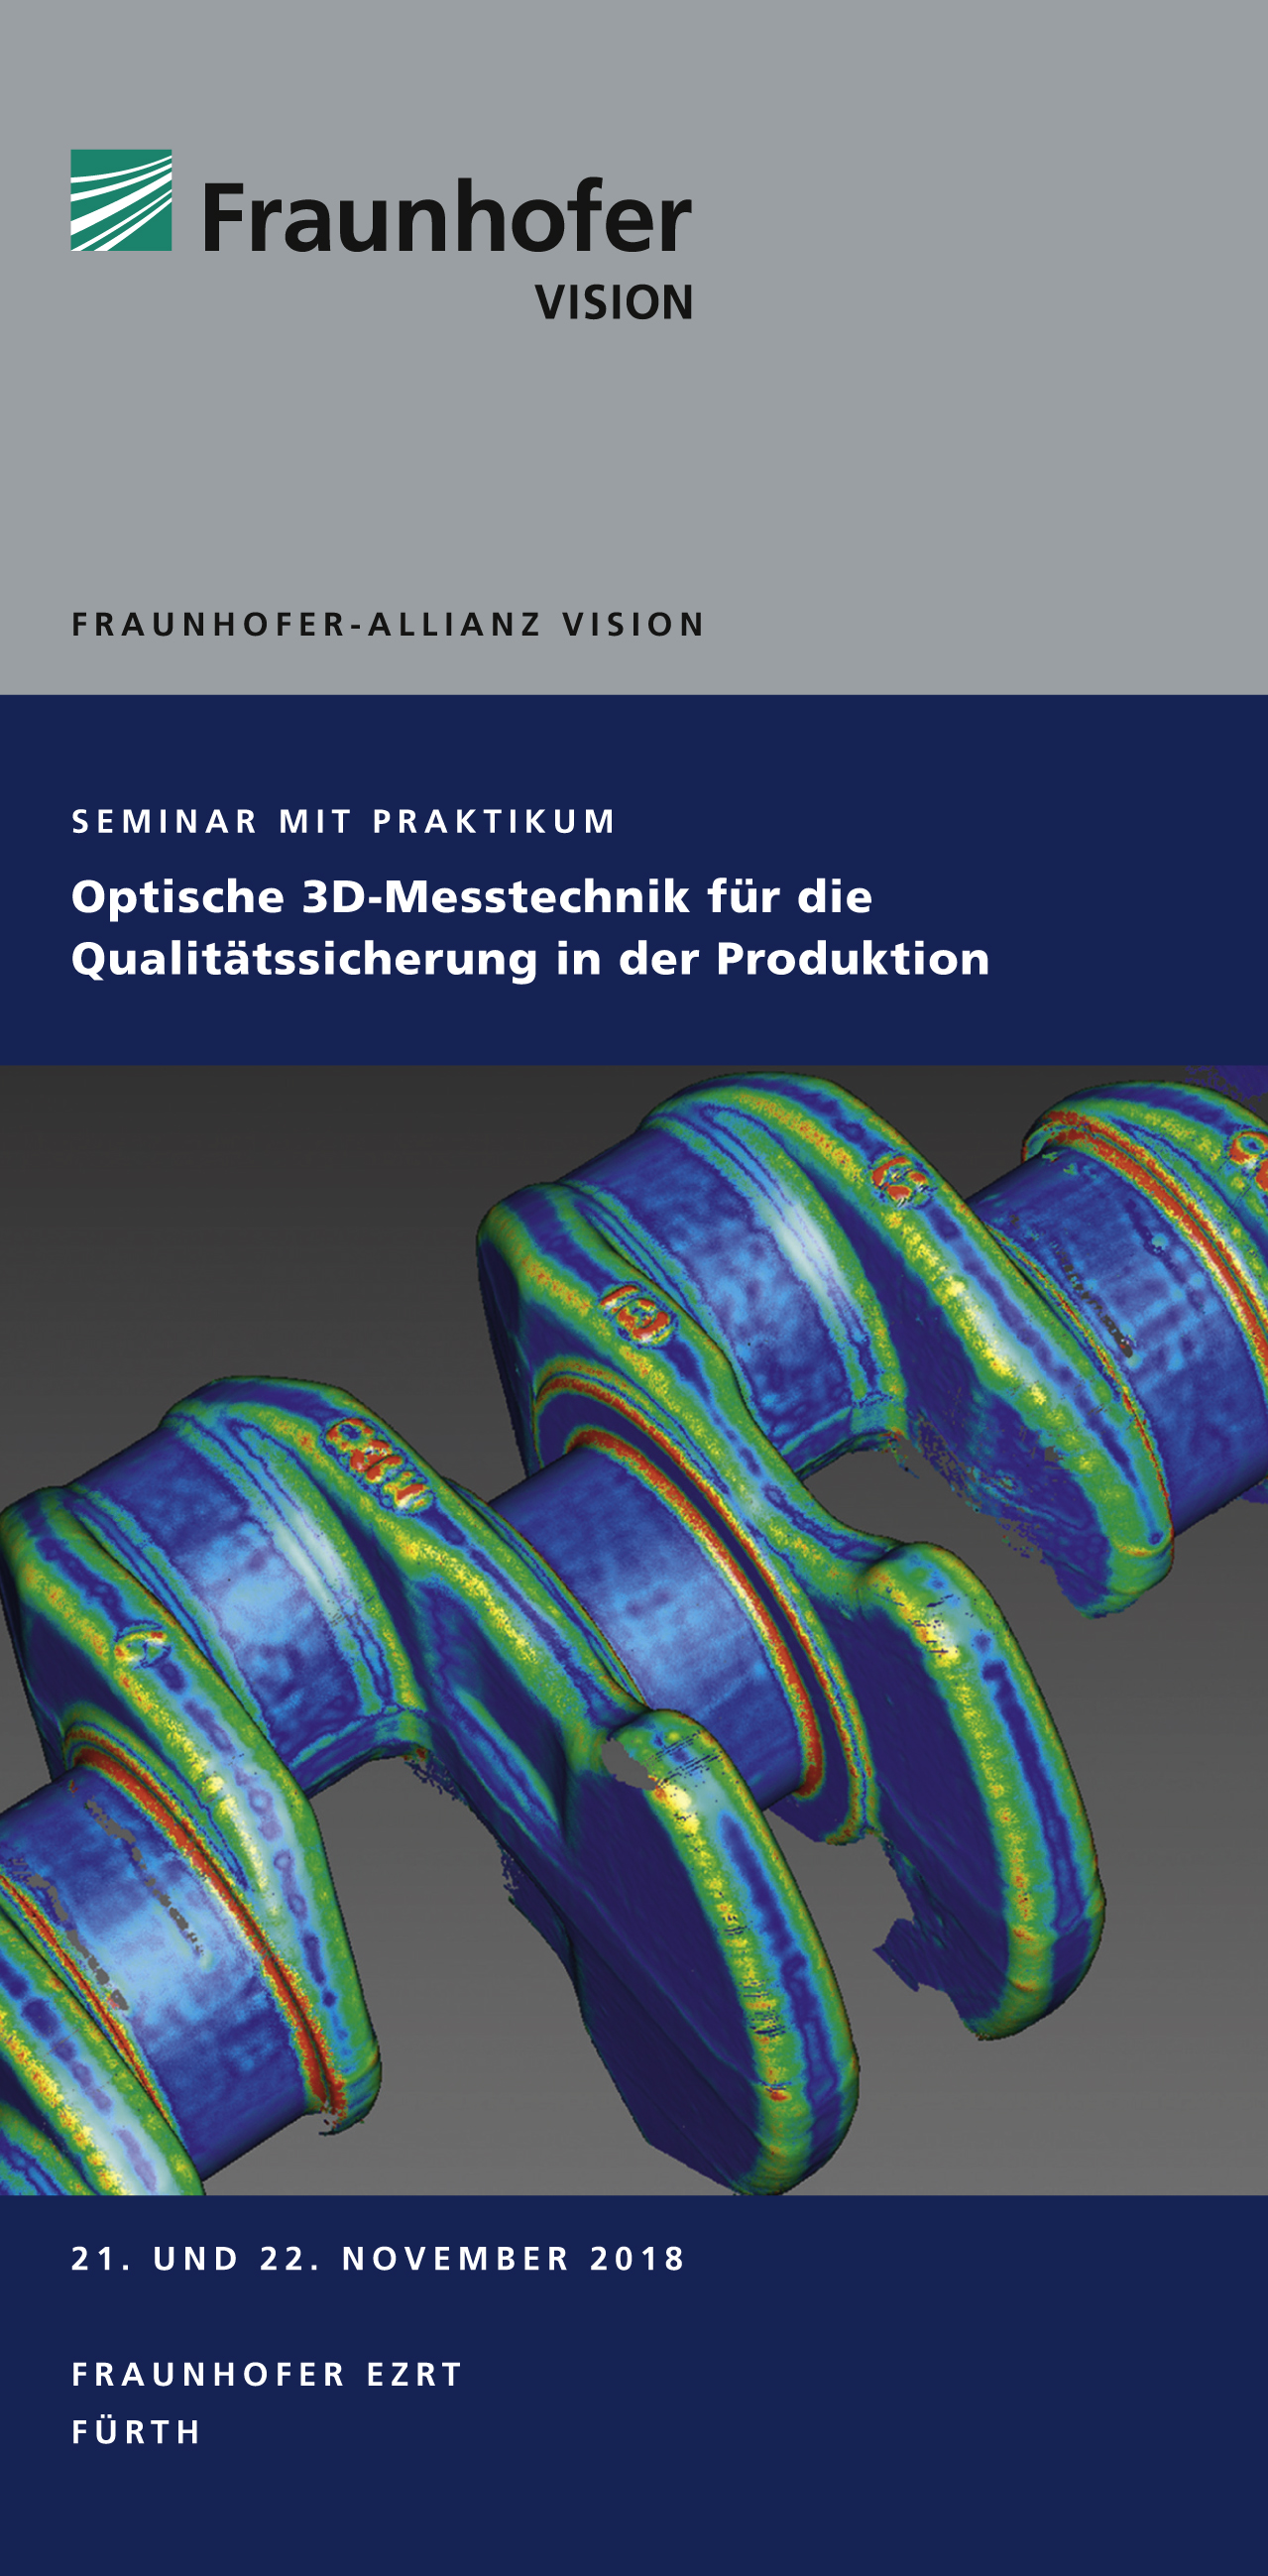 Fraunhofer_Vision_3D-Messtechnik.jpg